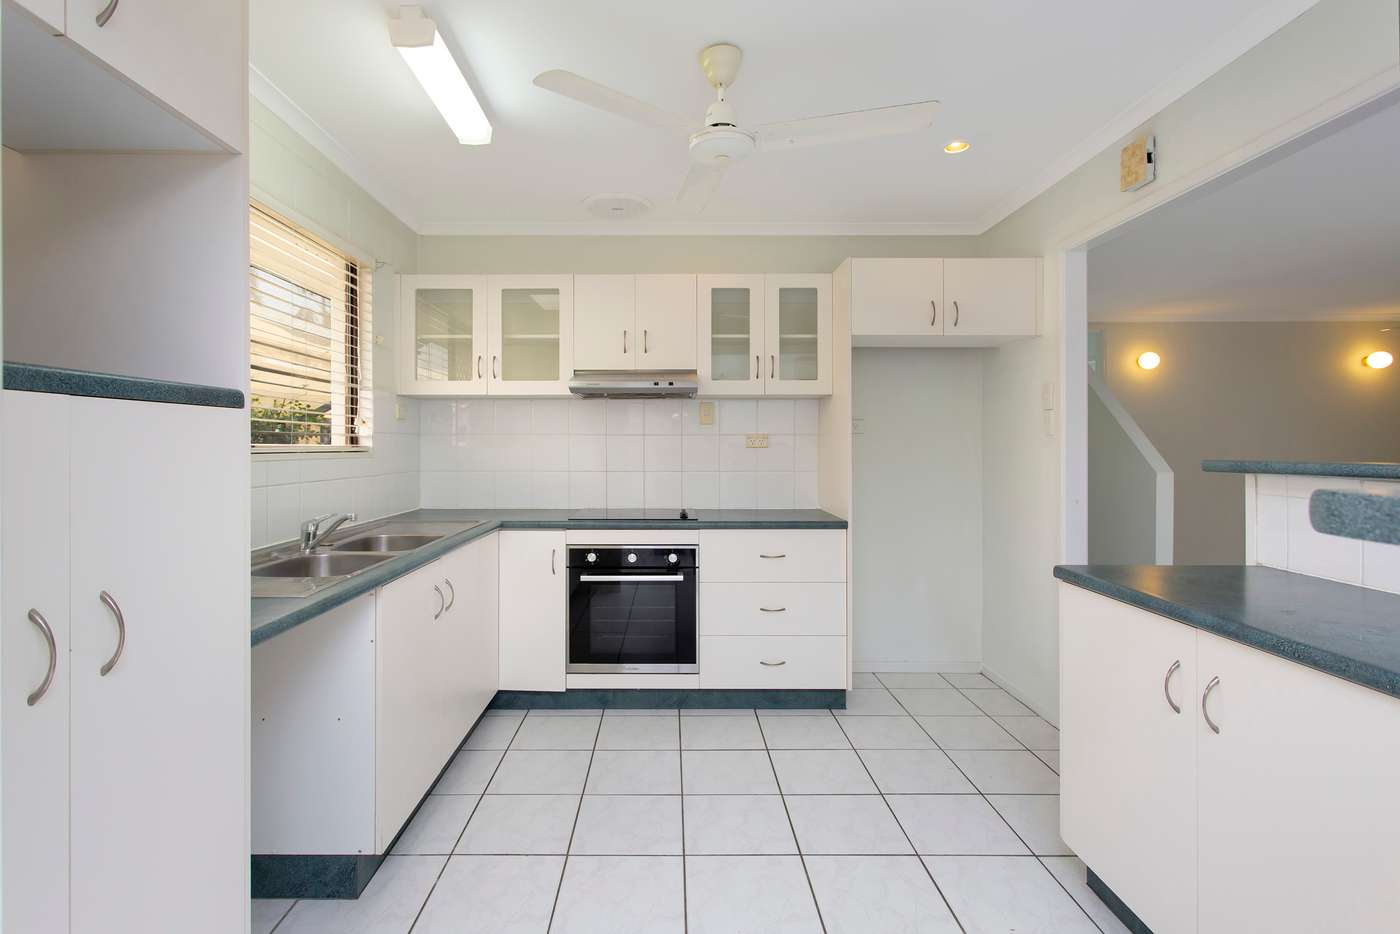 Fifth view of Homely house listing, 14 Allamanda Crescent, Annandale QLD 4814